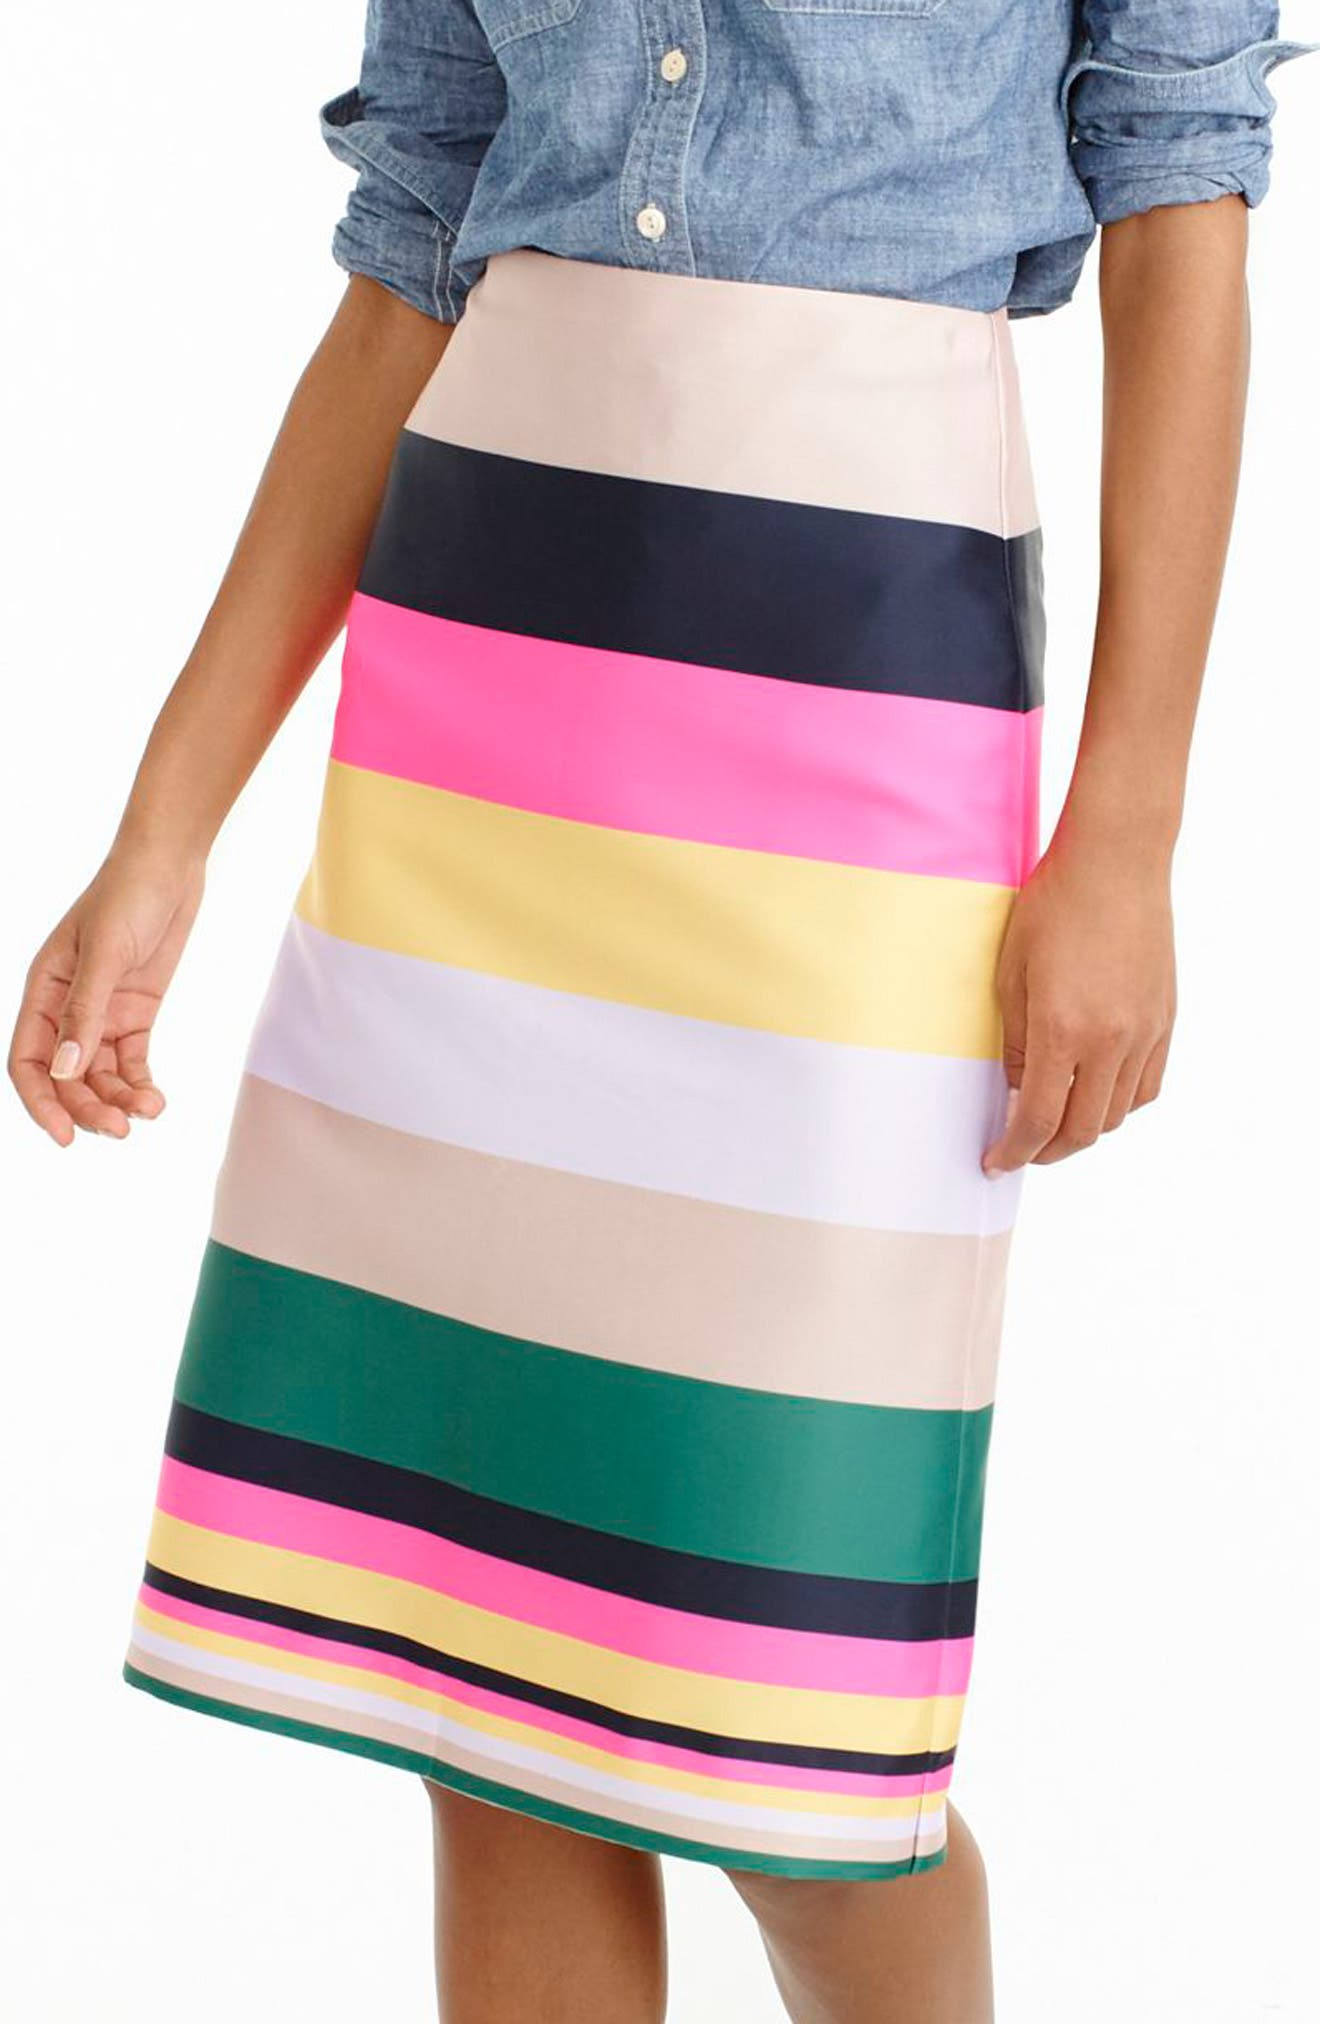 Main Image - J.Crew Pop Stripe Skirt (Regular & Petite)